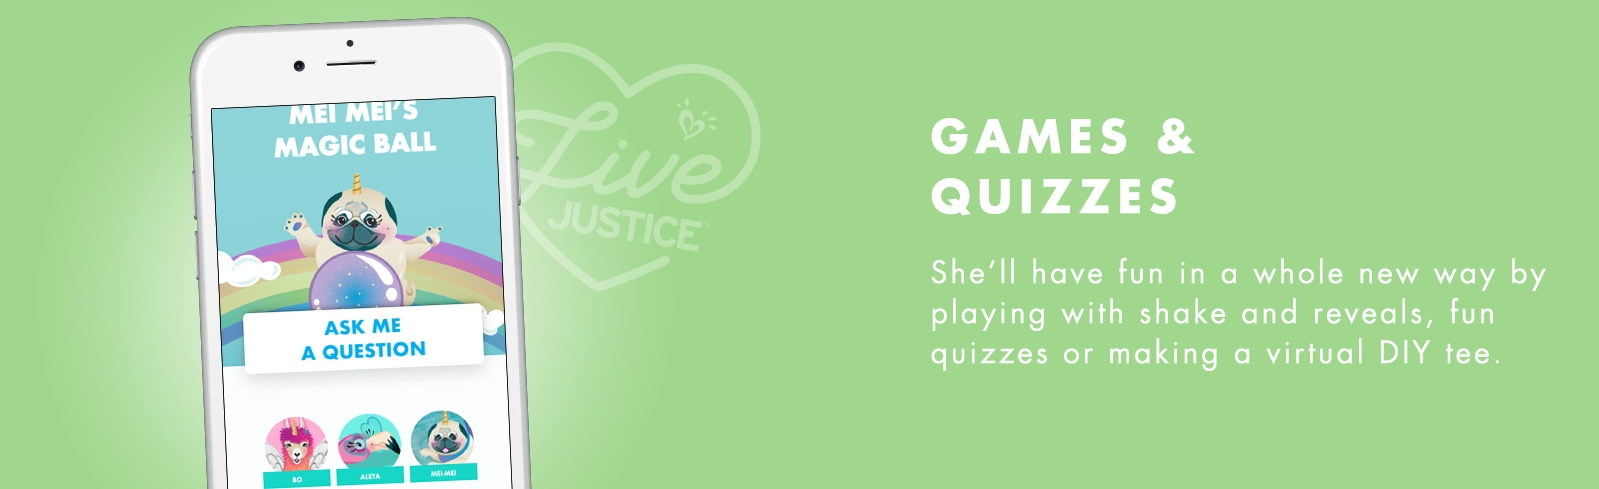 Games & Quizzes